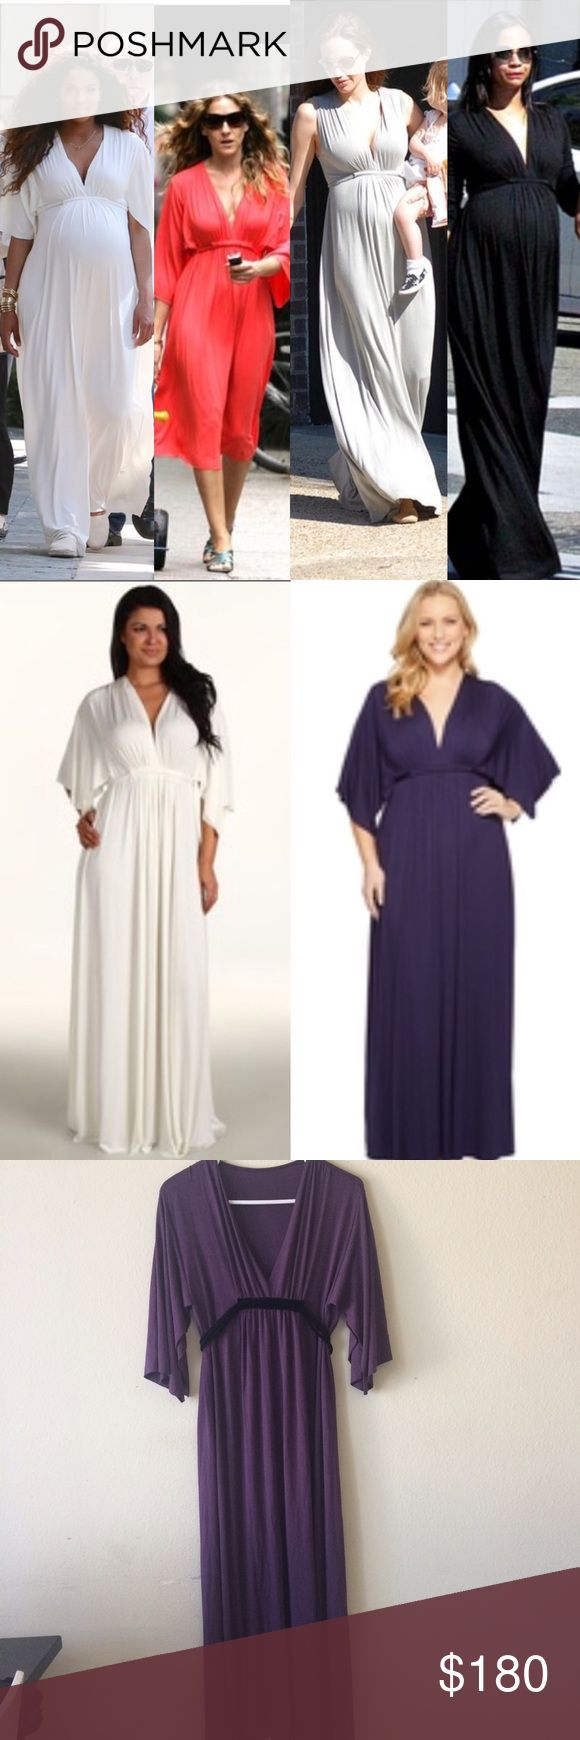 Rachel Pally Caftan Dress Worn but well taken care off. Celebrities love Rachel Pally because it's a cool comfy dress. It's not only a maternity dress, wear it anytime. Open to reasonable offers. Second Picture model and Ciara are wearing exact same dress different color. Size is XS but can fit up to a size Medium. Rachel Pally Dresses